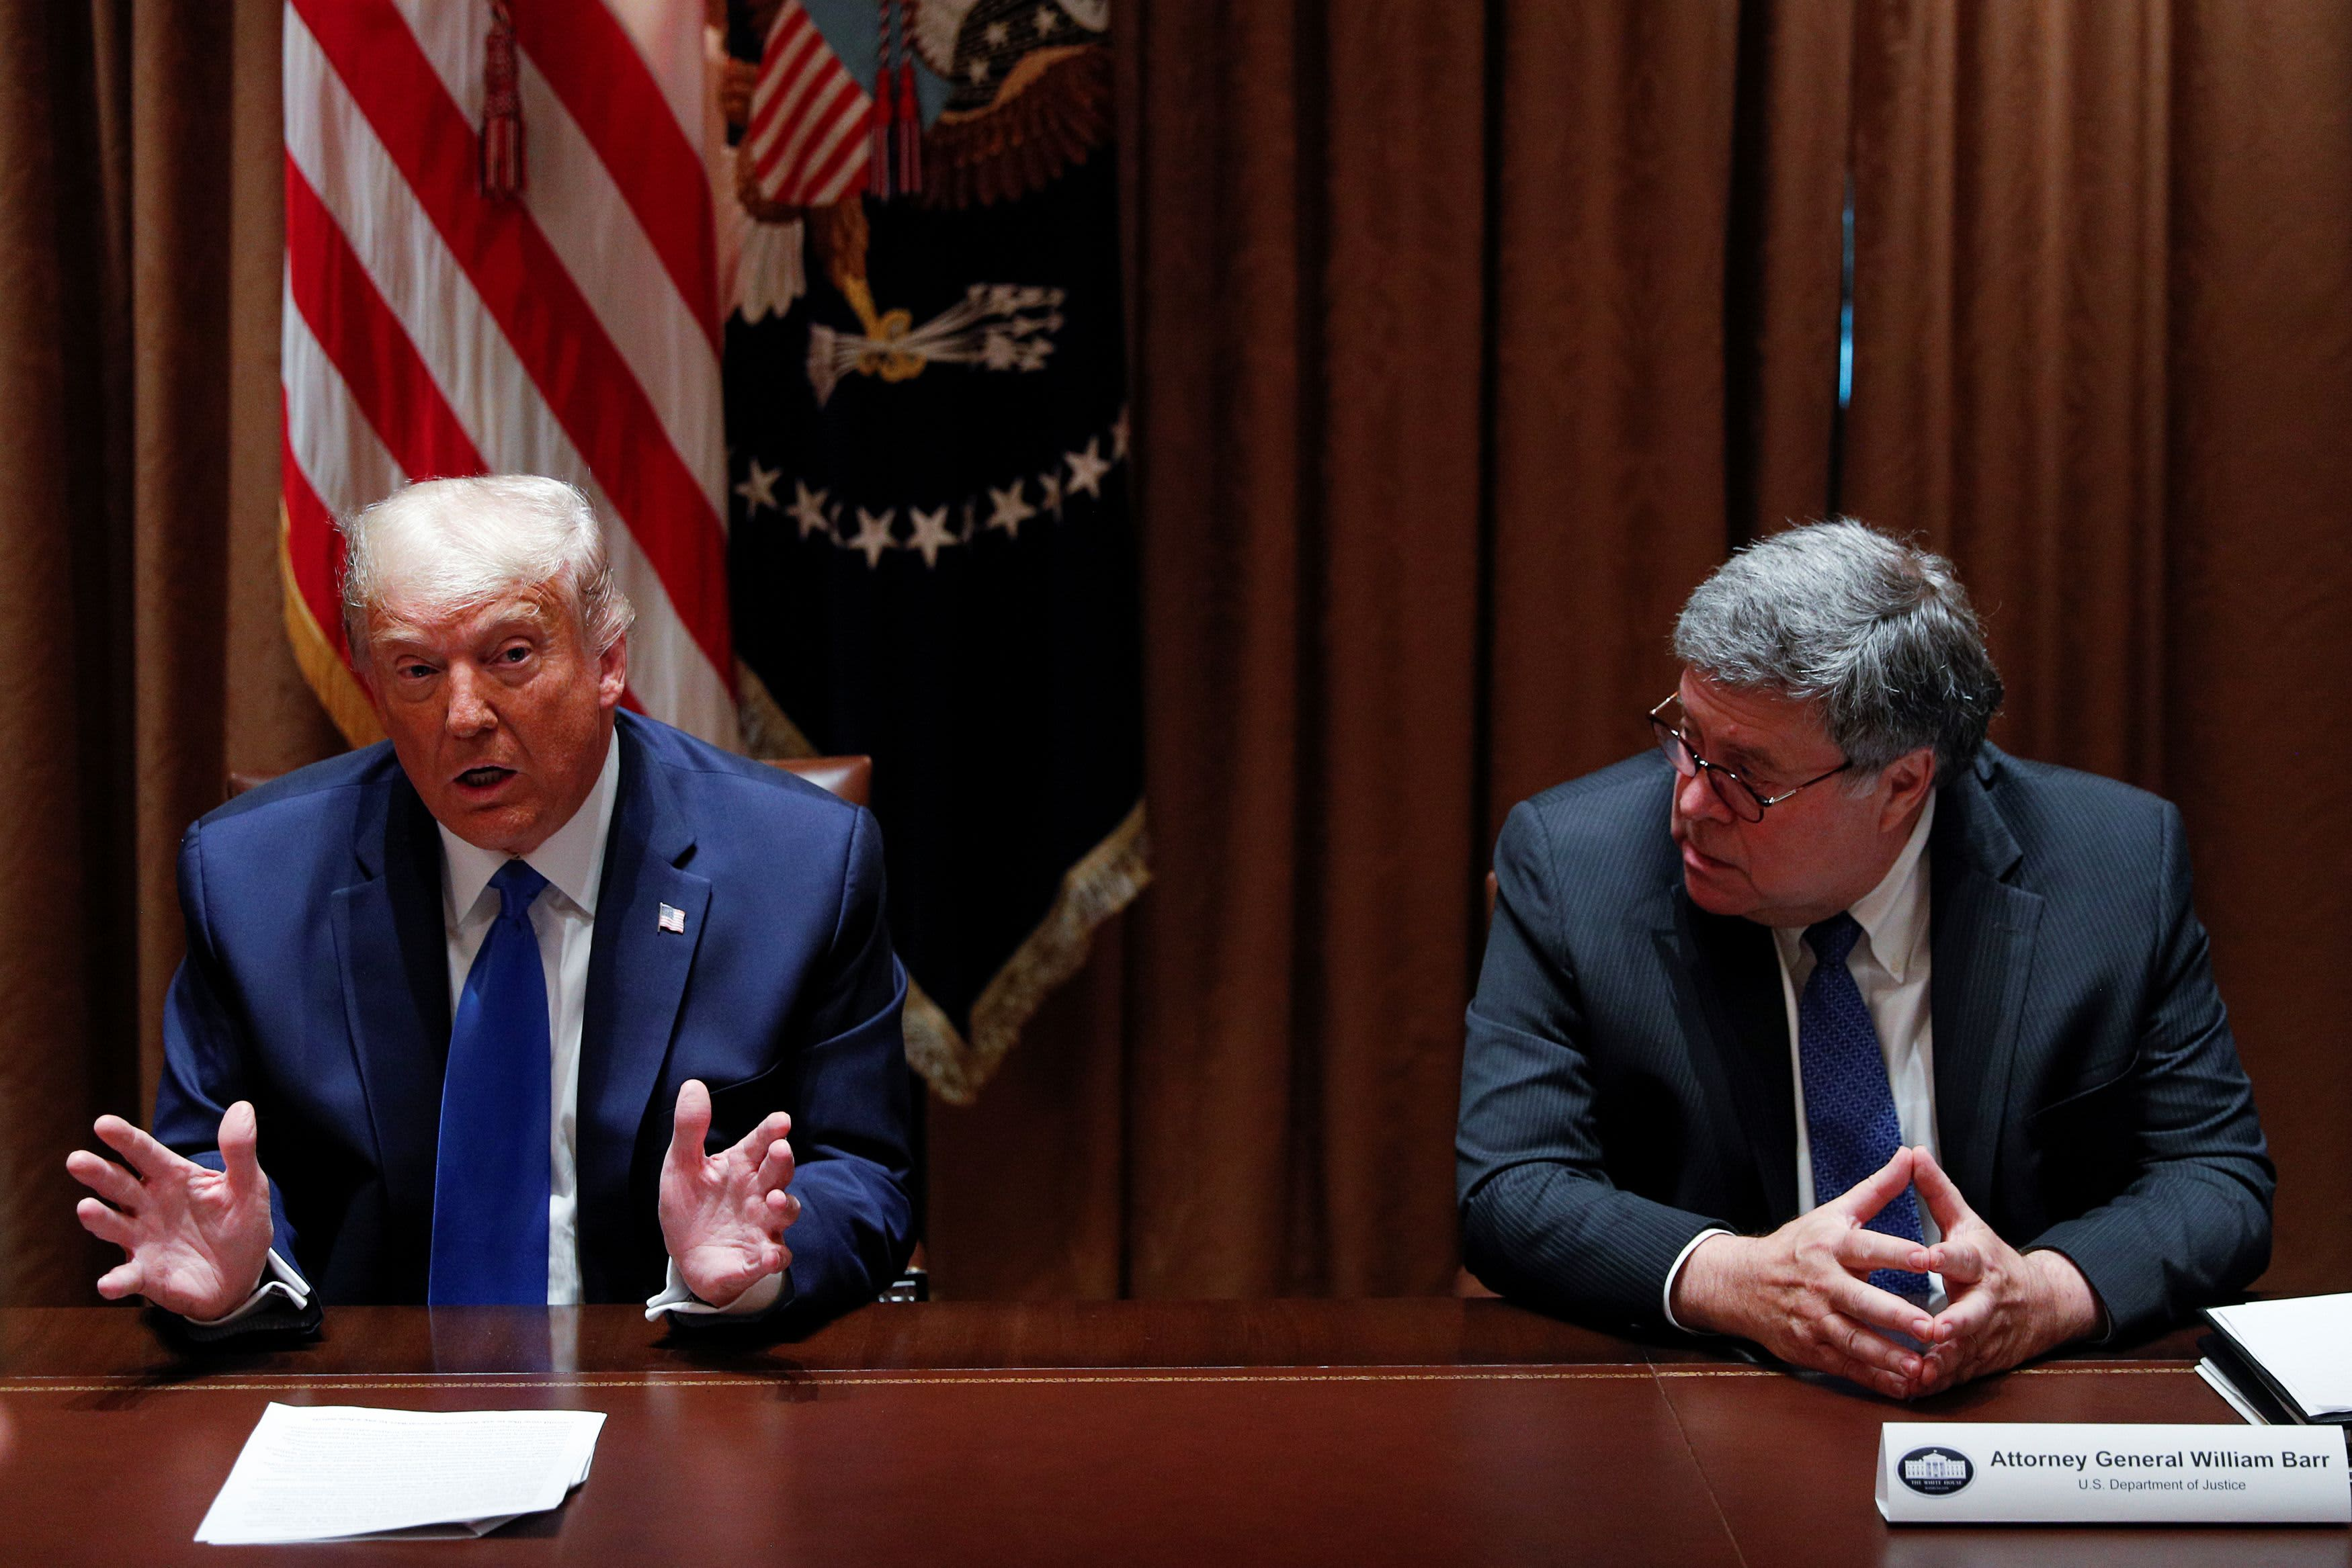 Trump declines to say he will bring back Attorney General Barr if he wins: 'I'm not happy' – CNBC